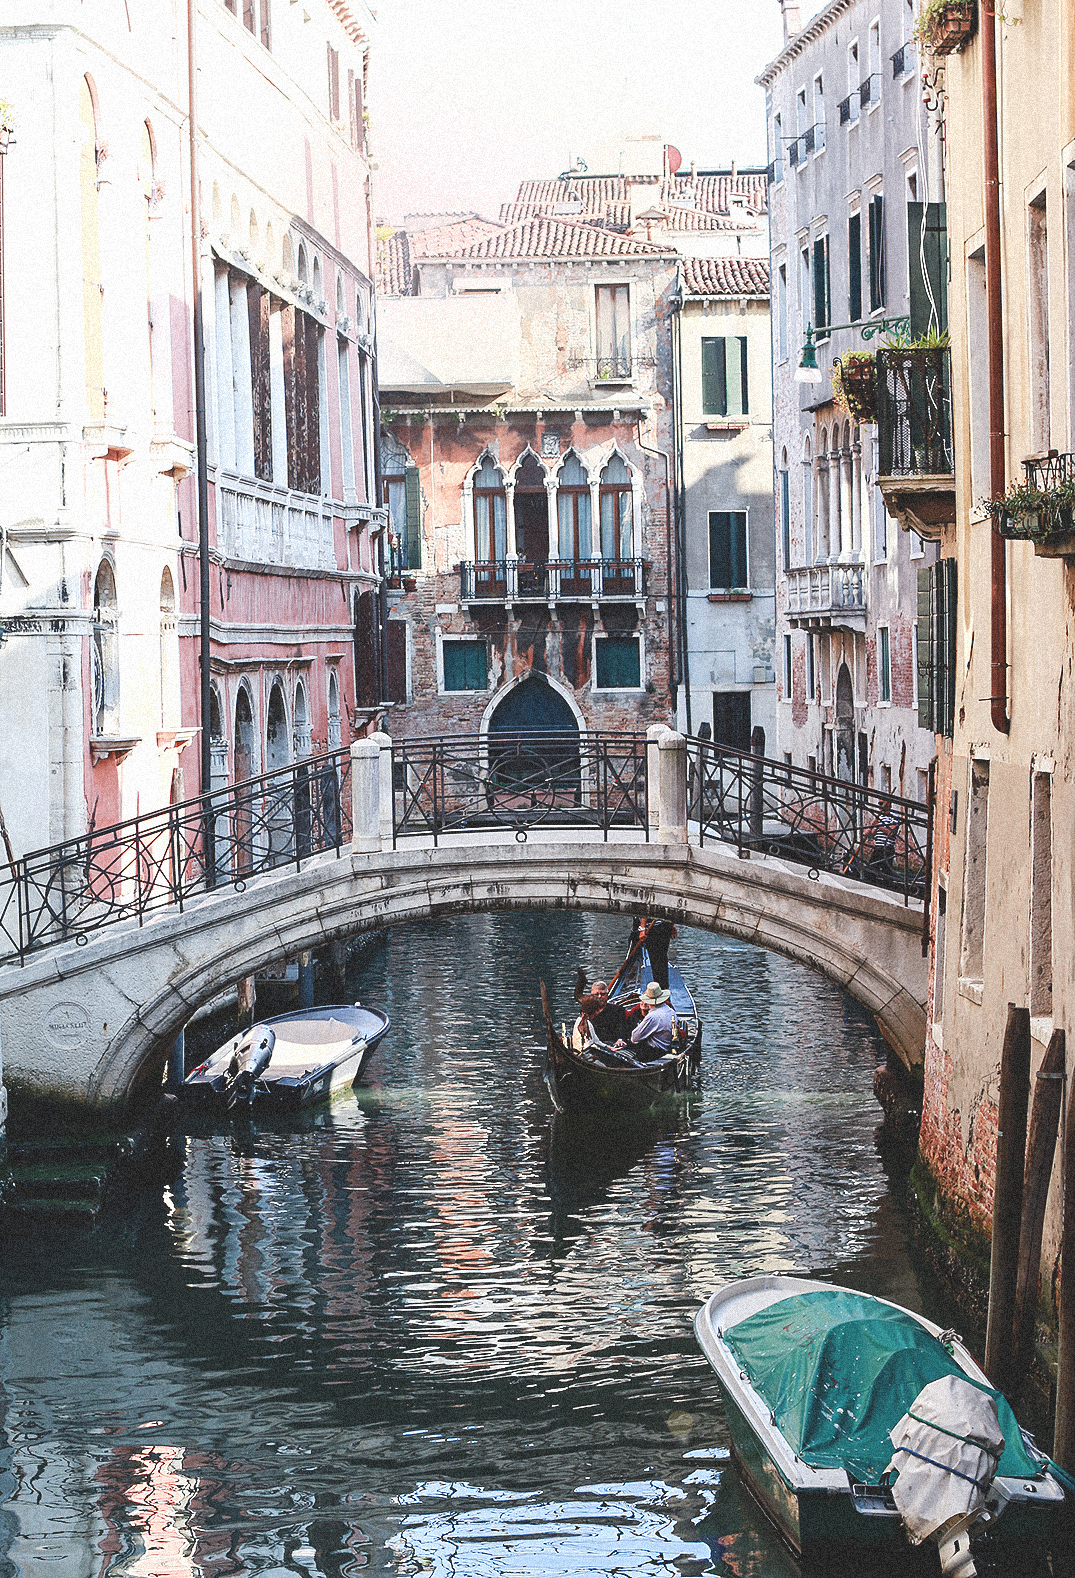 Venezia_travel_blogger_fashion_moscow_ritalifestyle_margarita_maslova_italy_trip_venice_photo